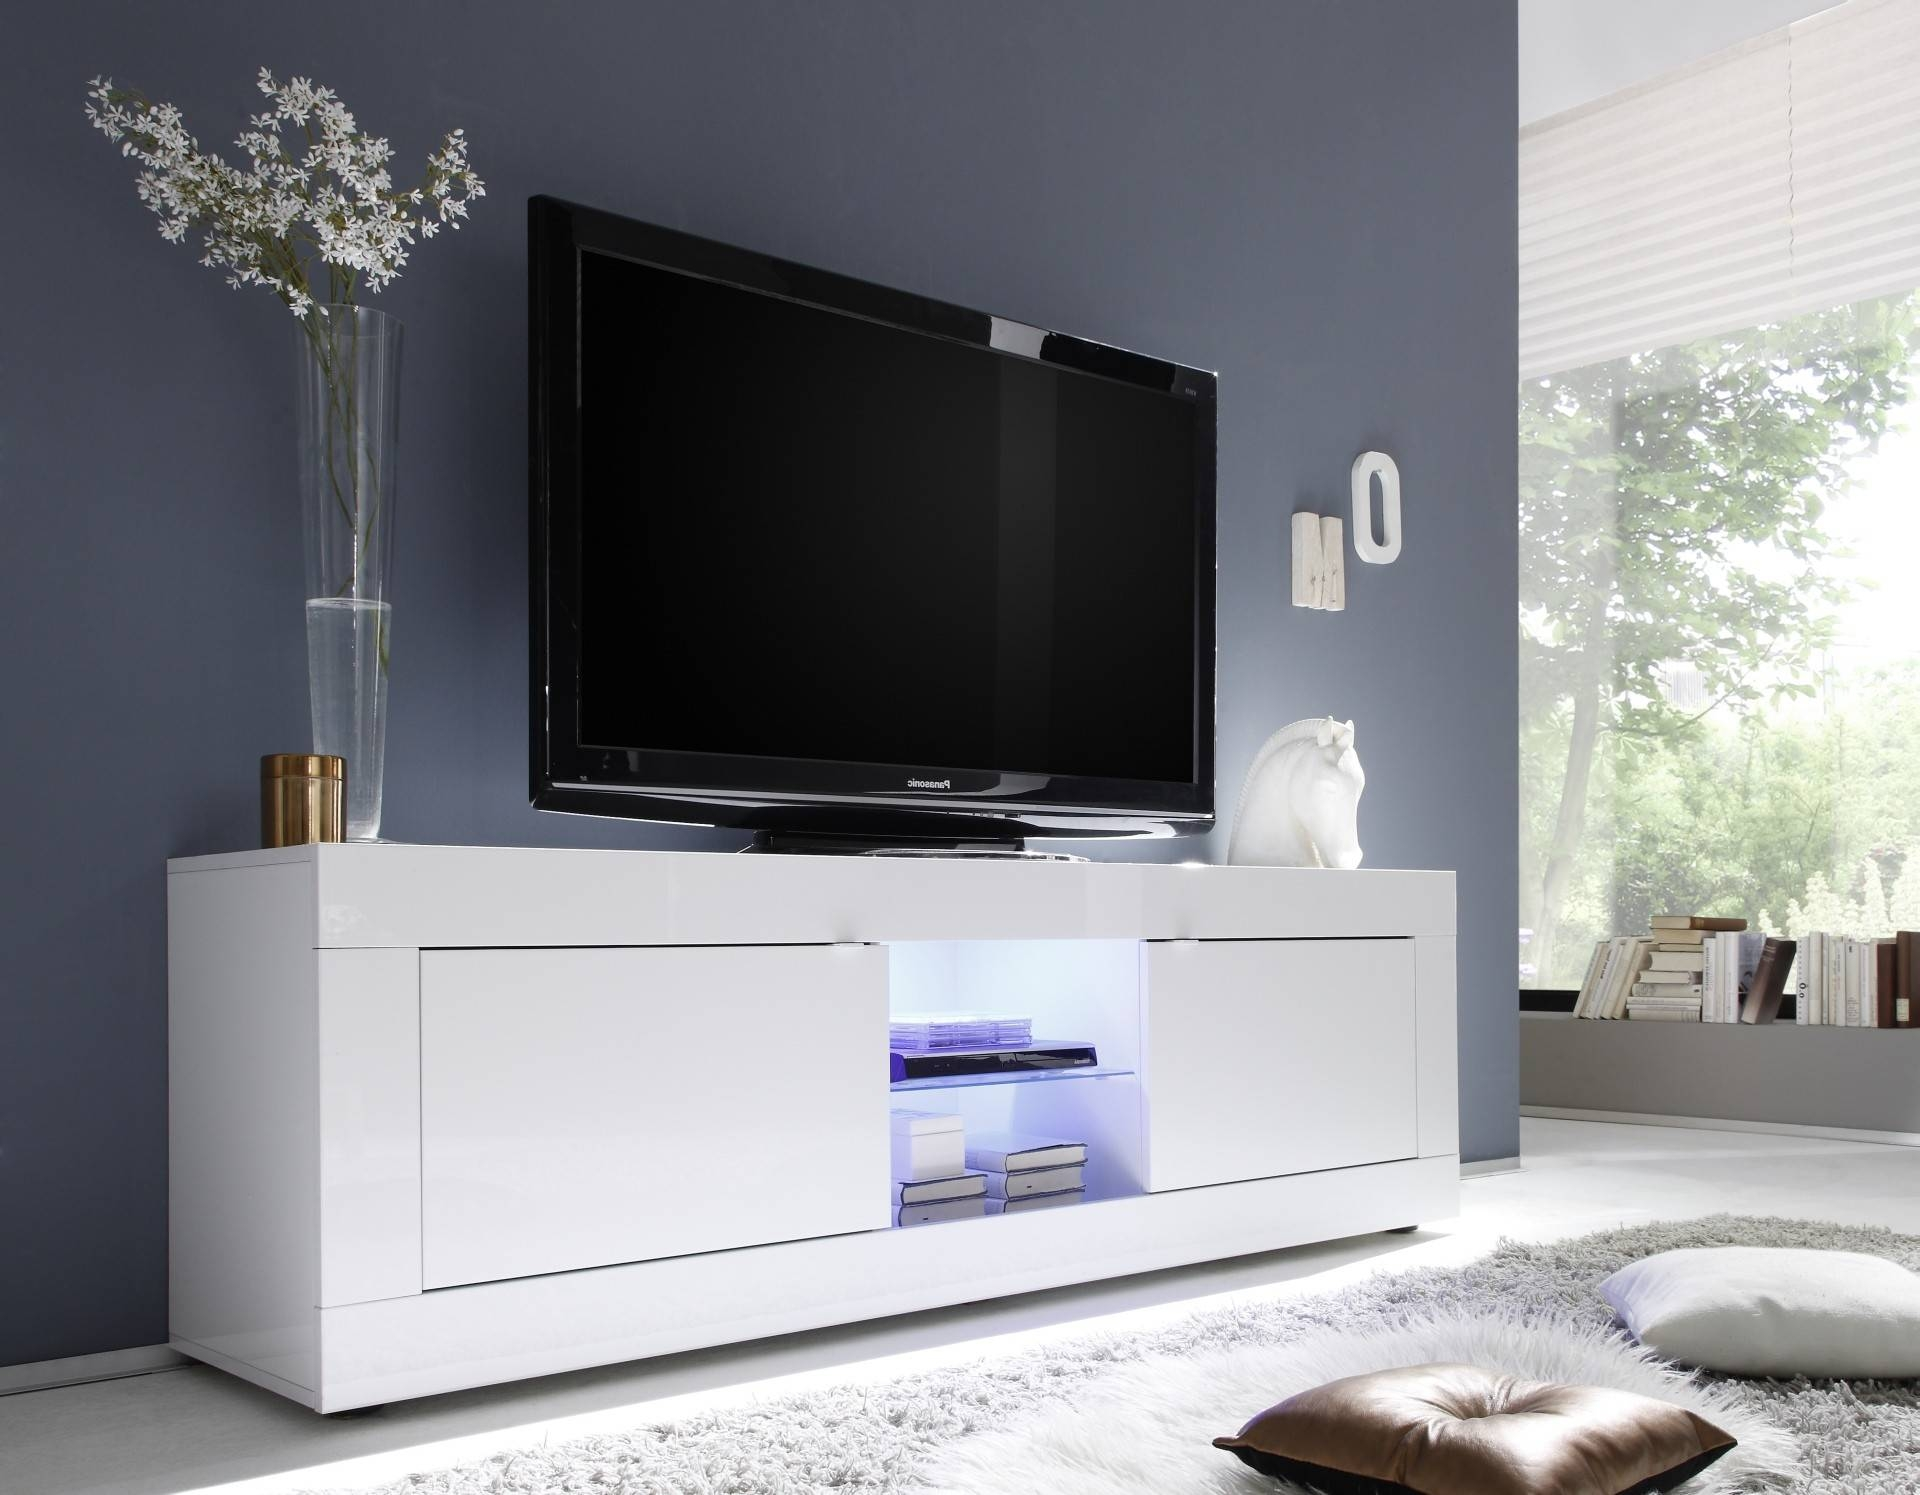 15 Best Modern White Gloss Tv Stands # Muebles Dolce Vita